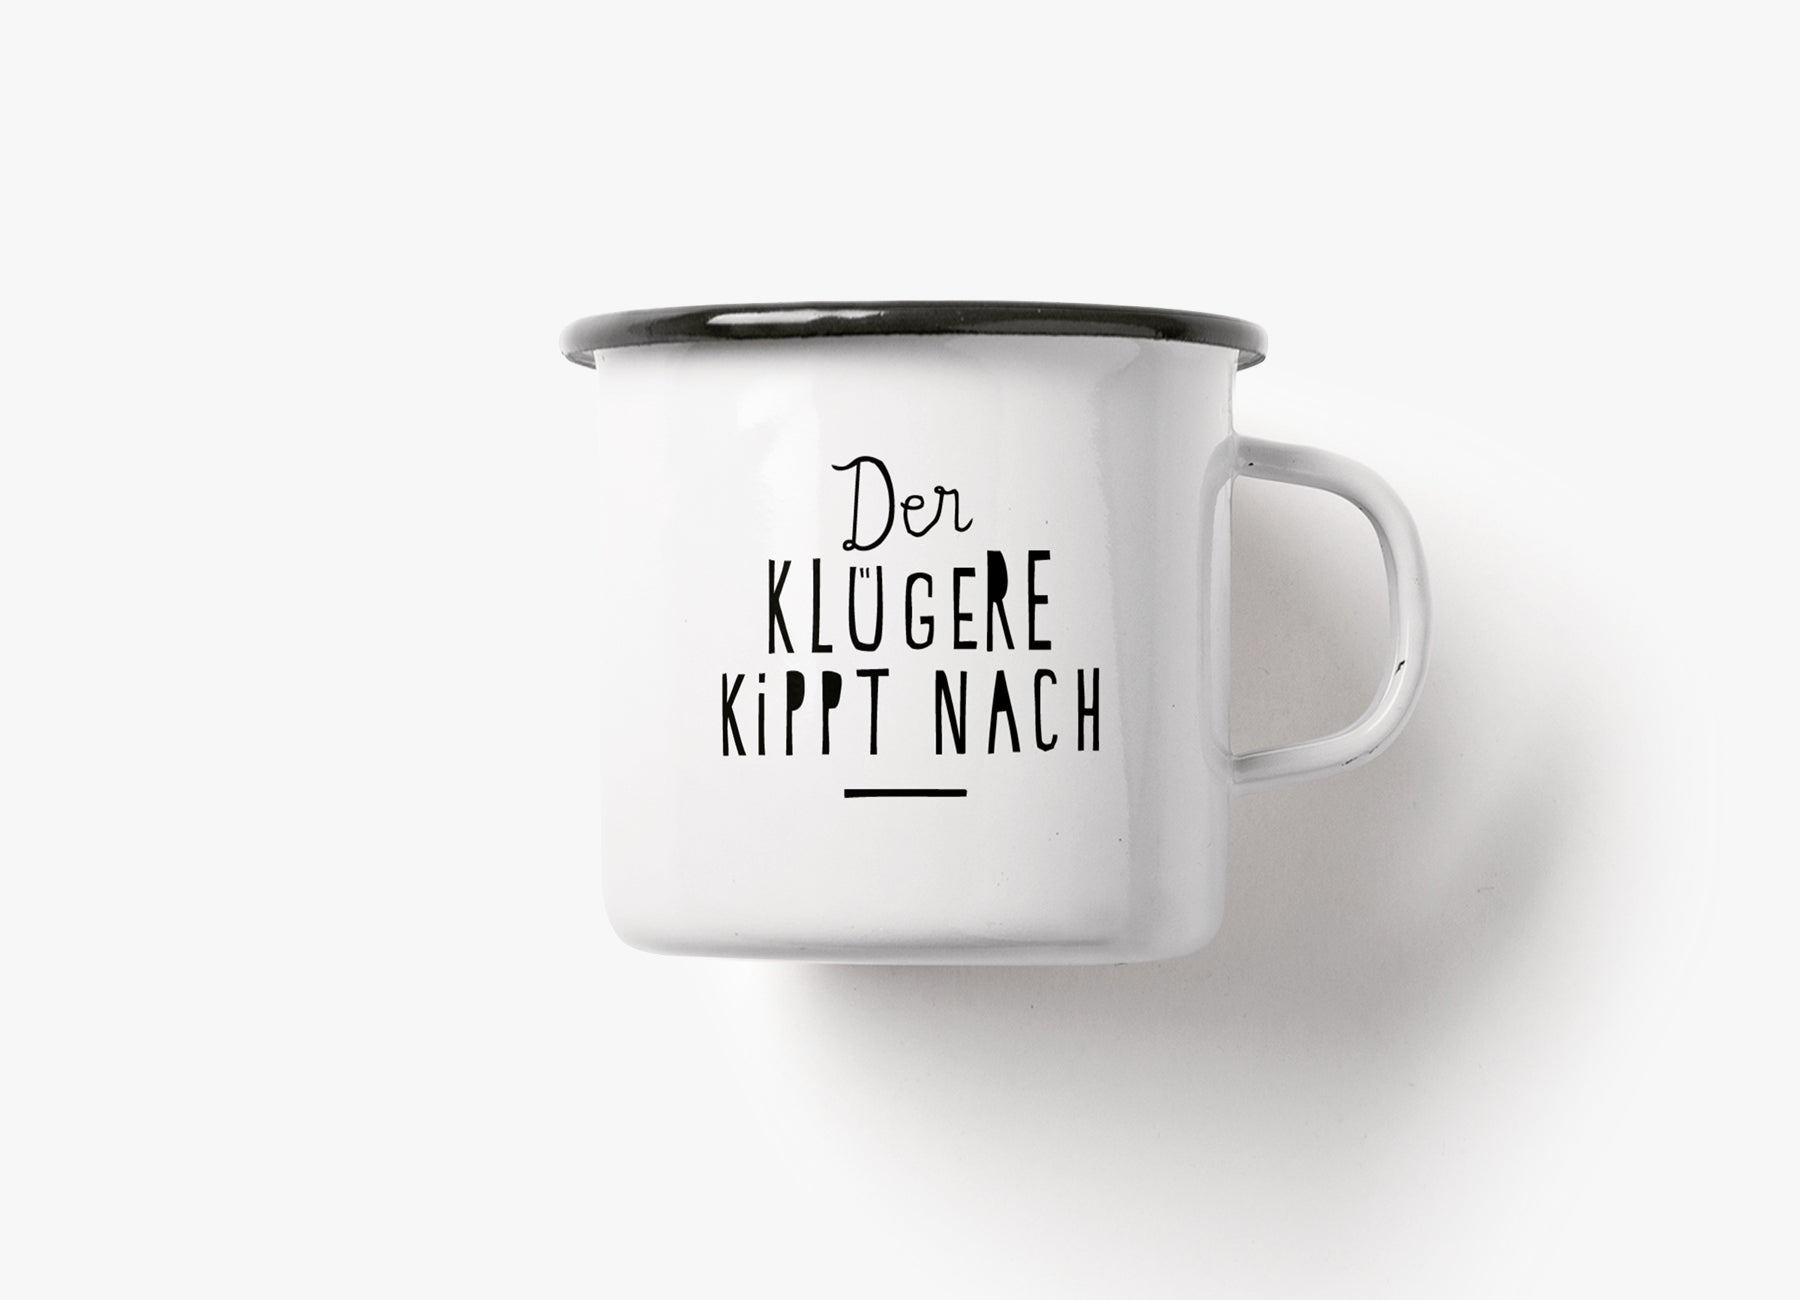 Too Good To Waste / Tasse / Der Klügere